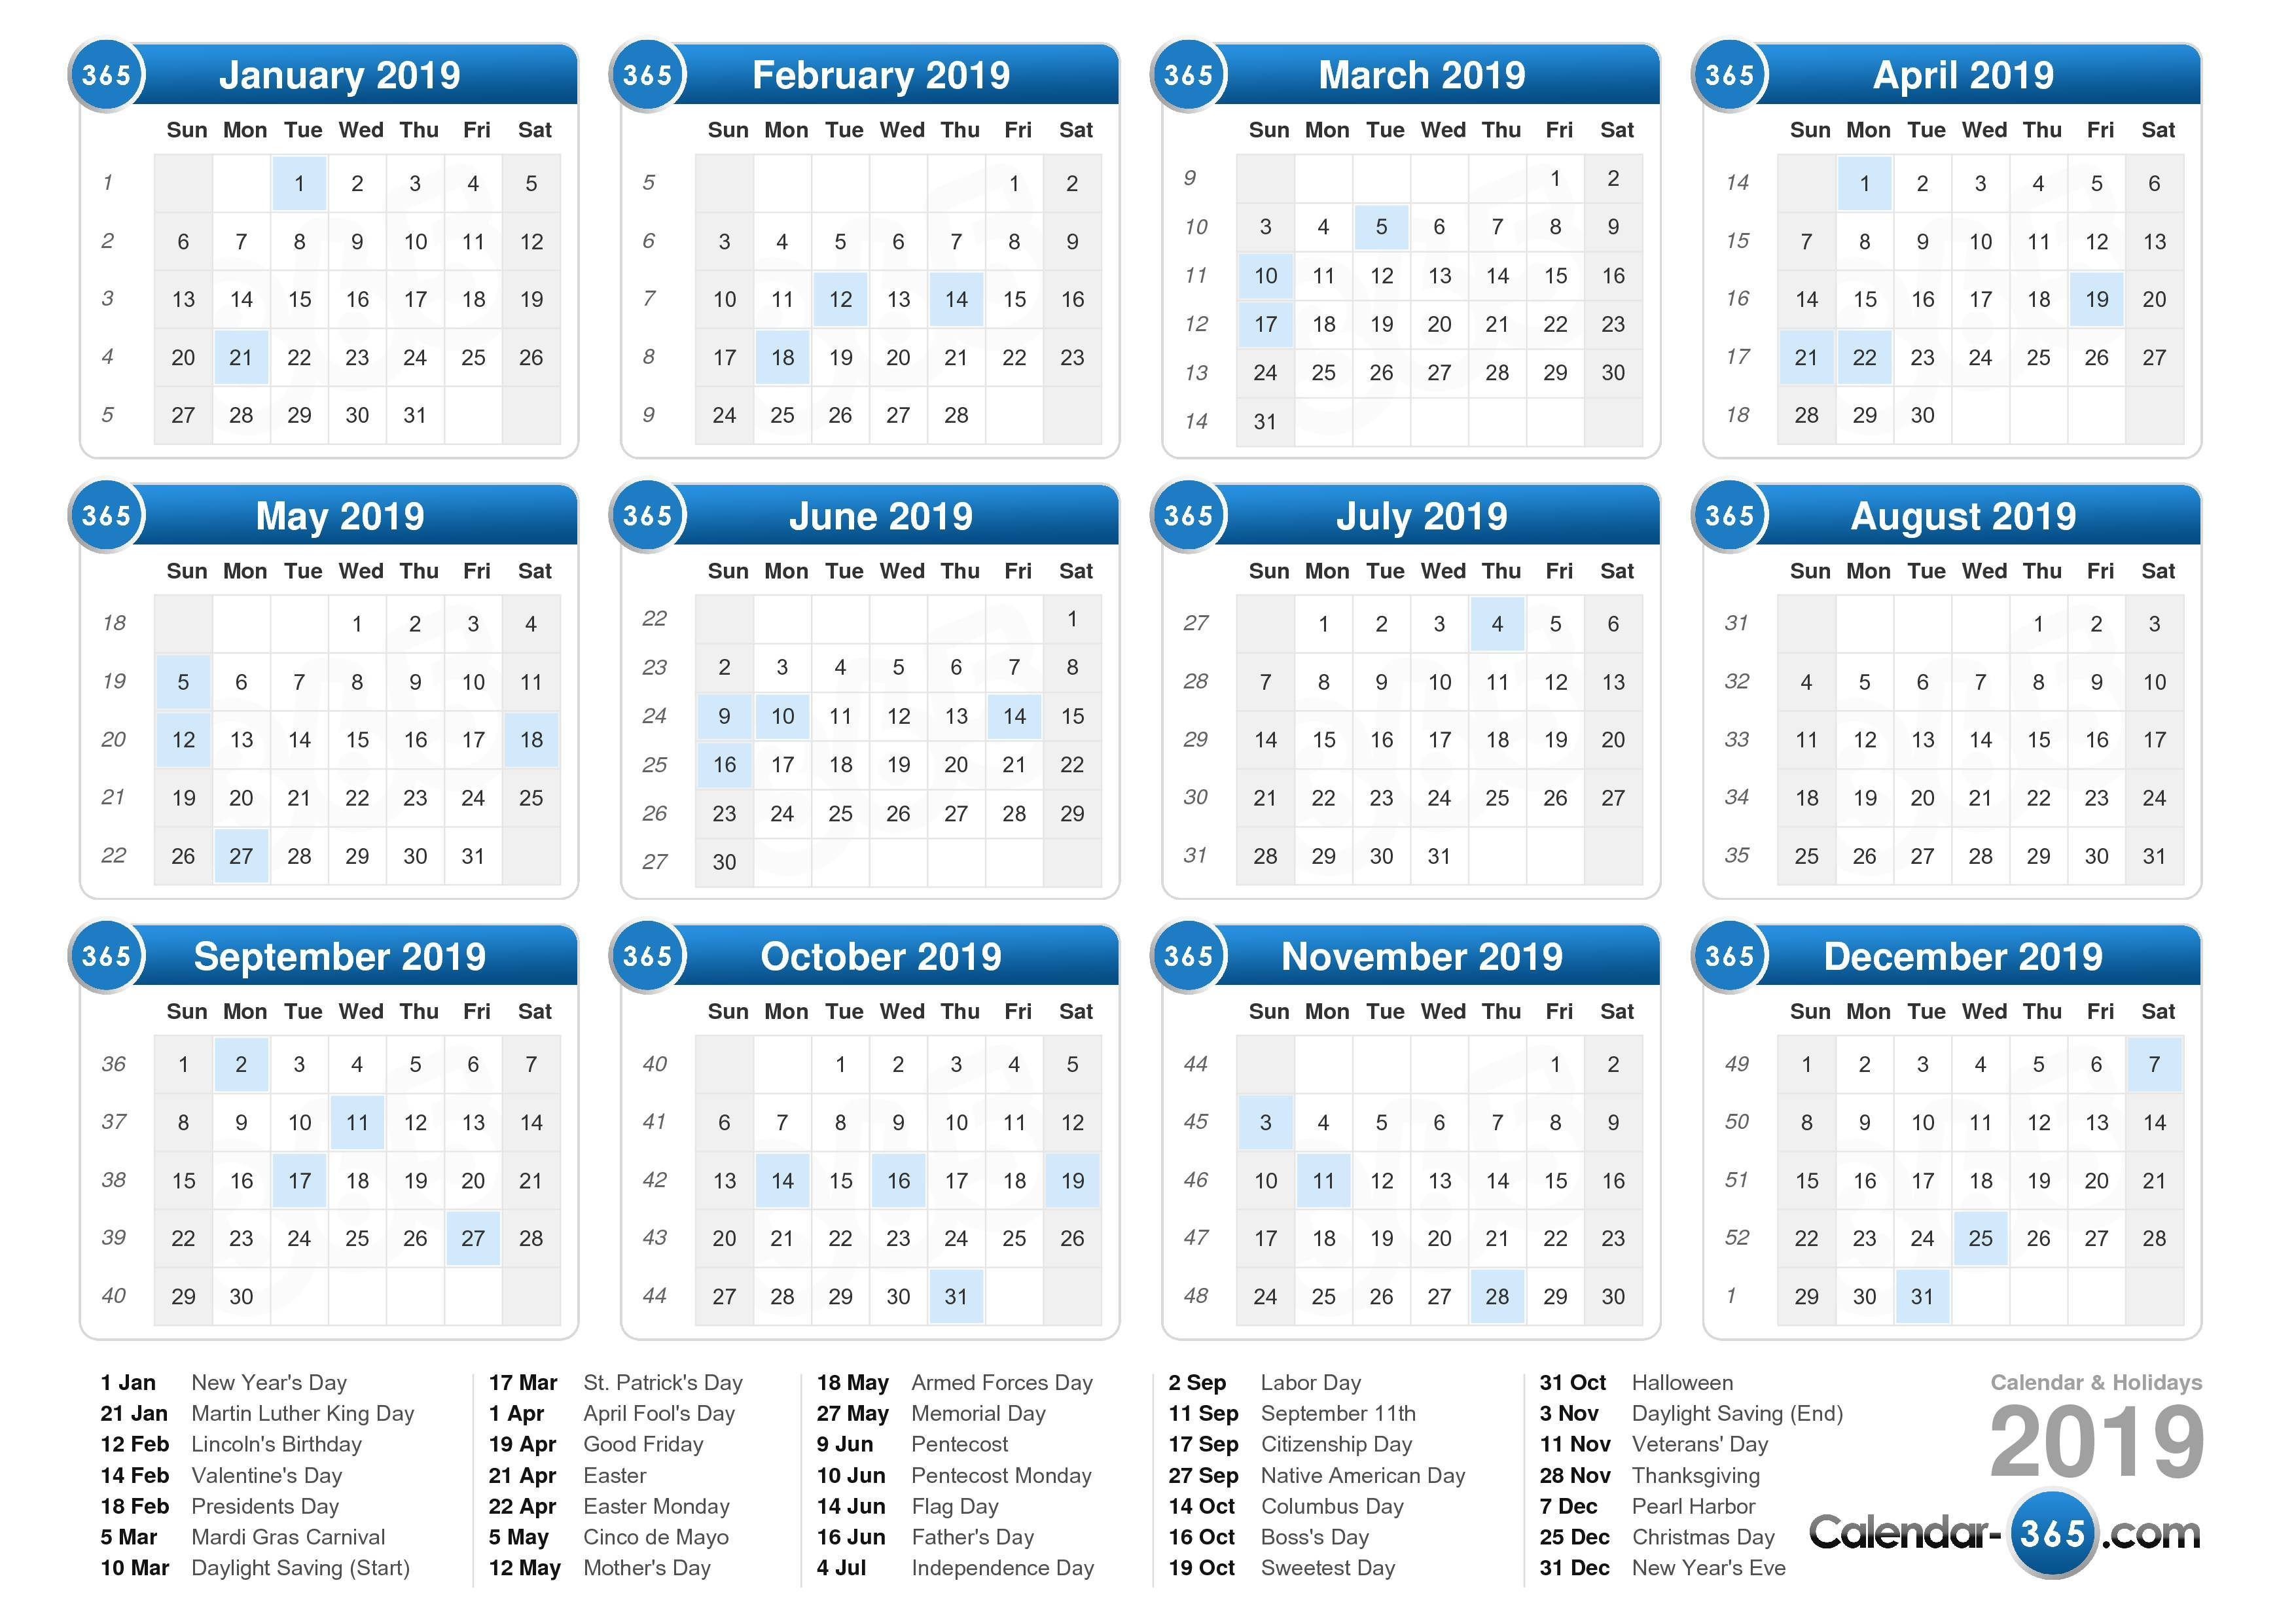 Calendar Year Same As 2019 With